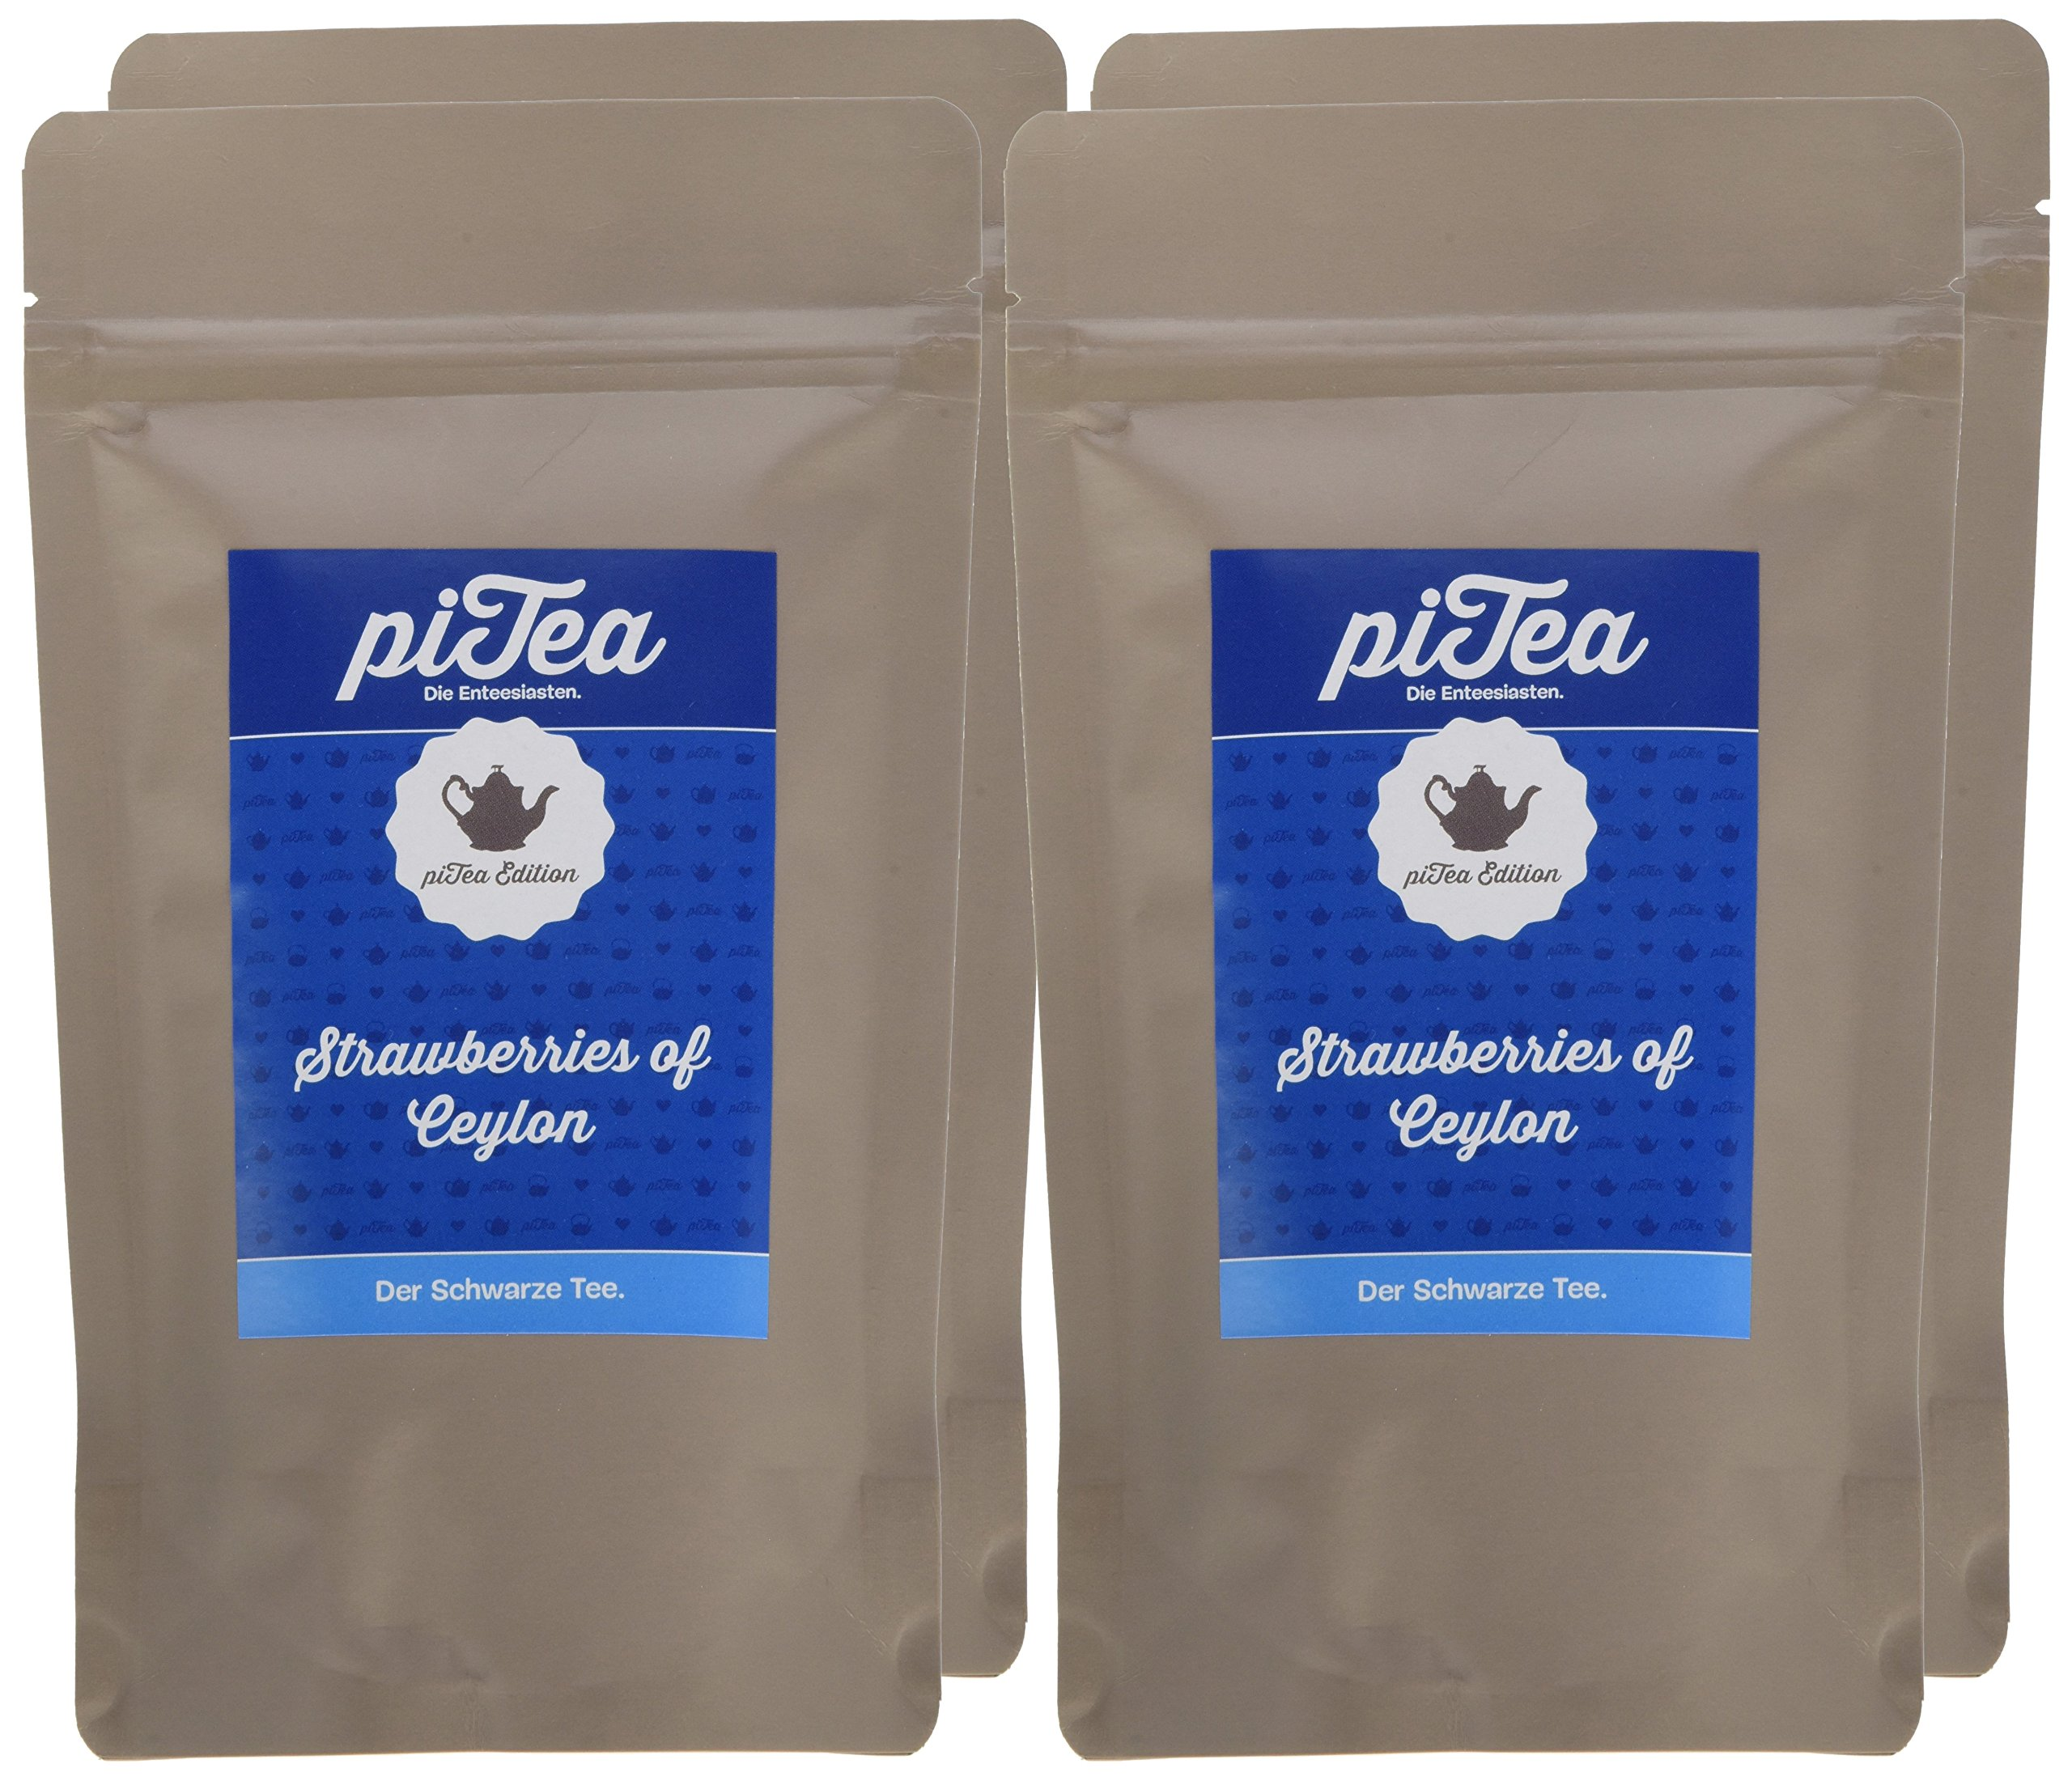 Pi-Tea-Strawberries-of-Ceylon-Tte-Schwarzer-Tee-natrlich-und-vegan-4er-Pack-4-x-75-g